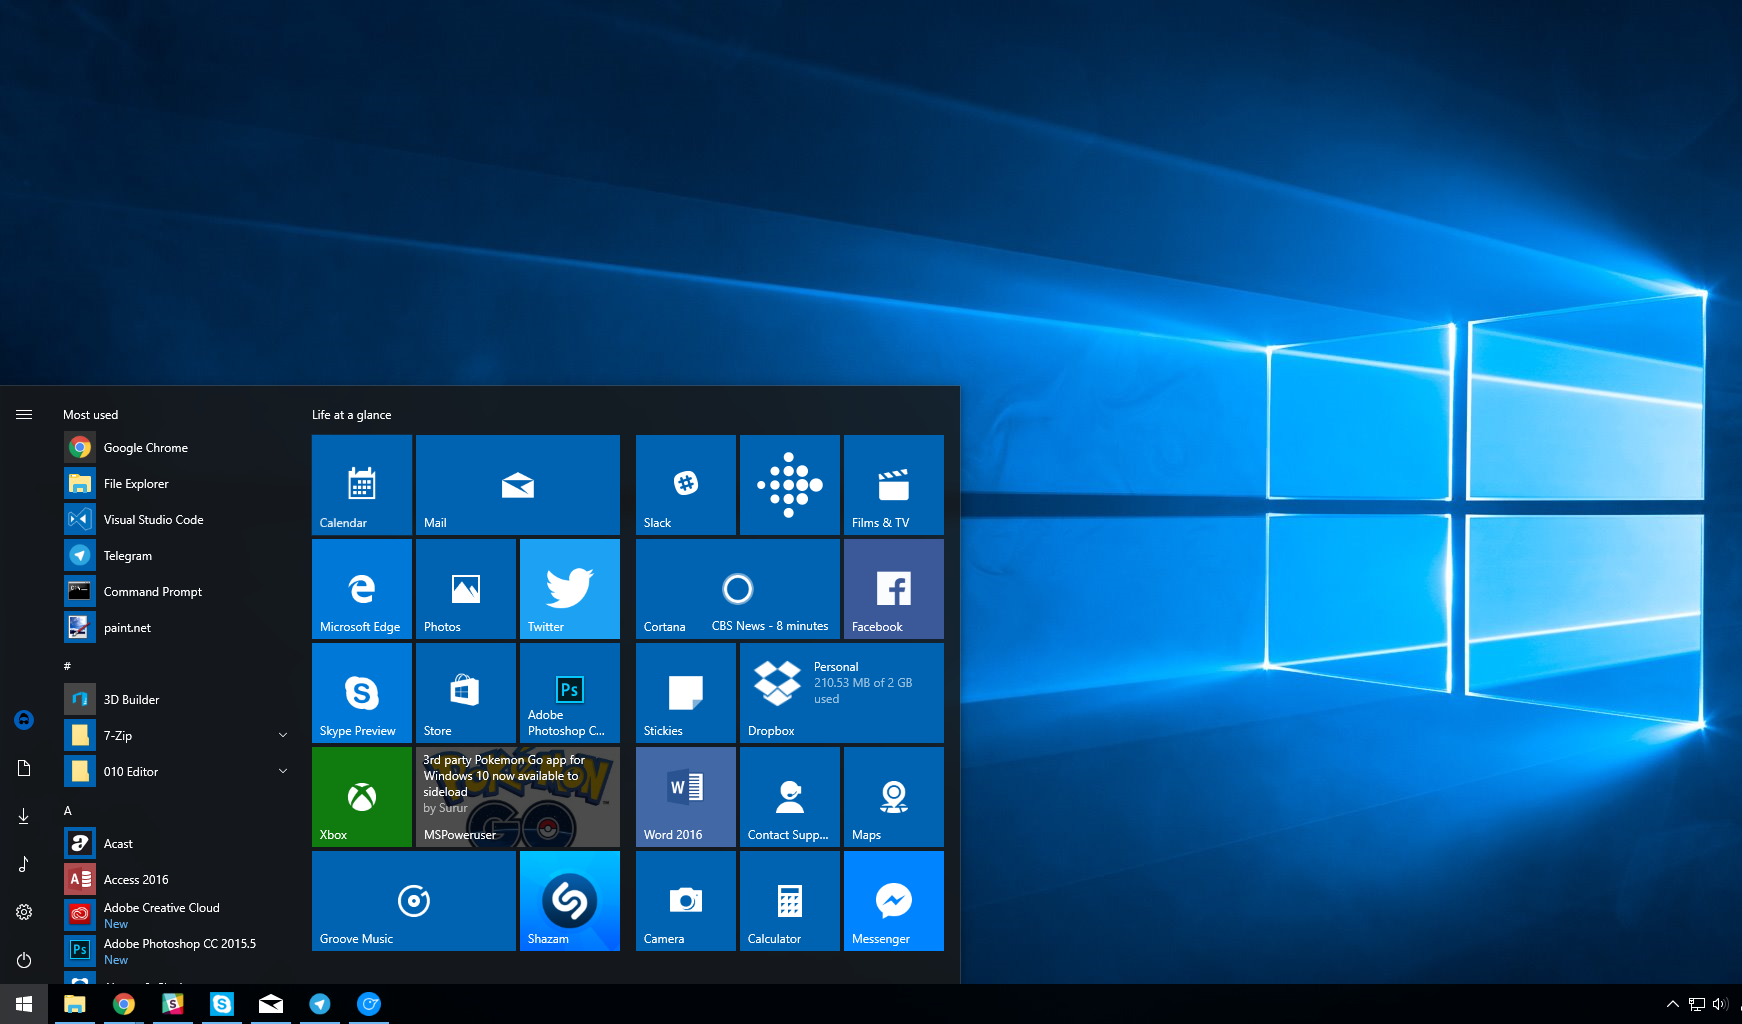 Windows 10 Anniversary Update is now available - MSPoweruser